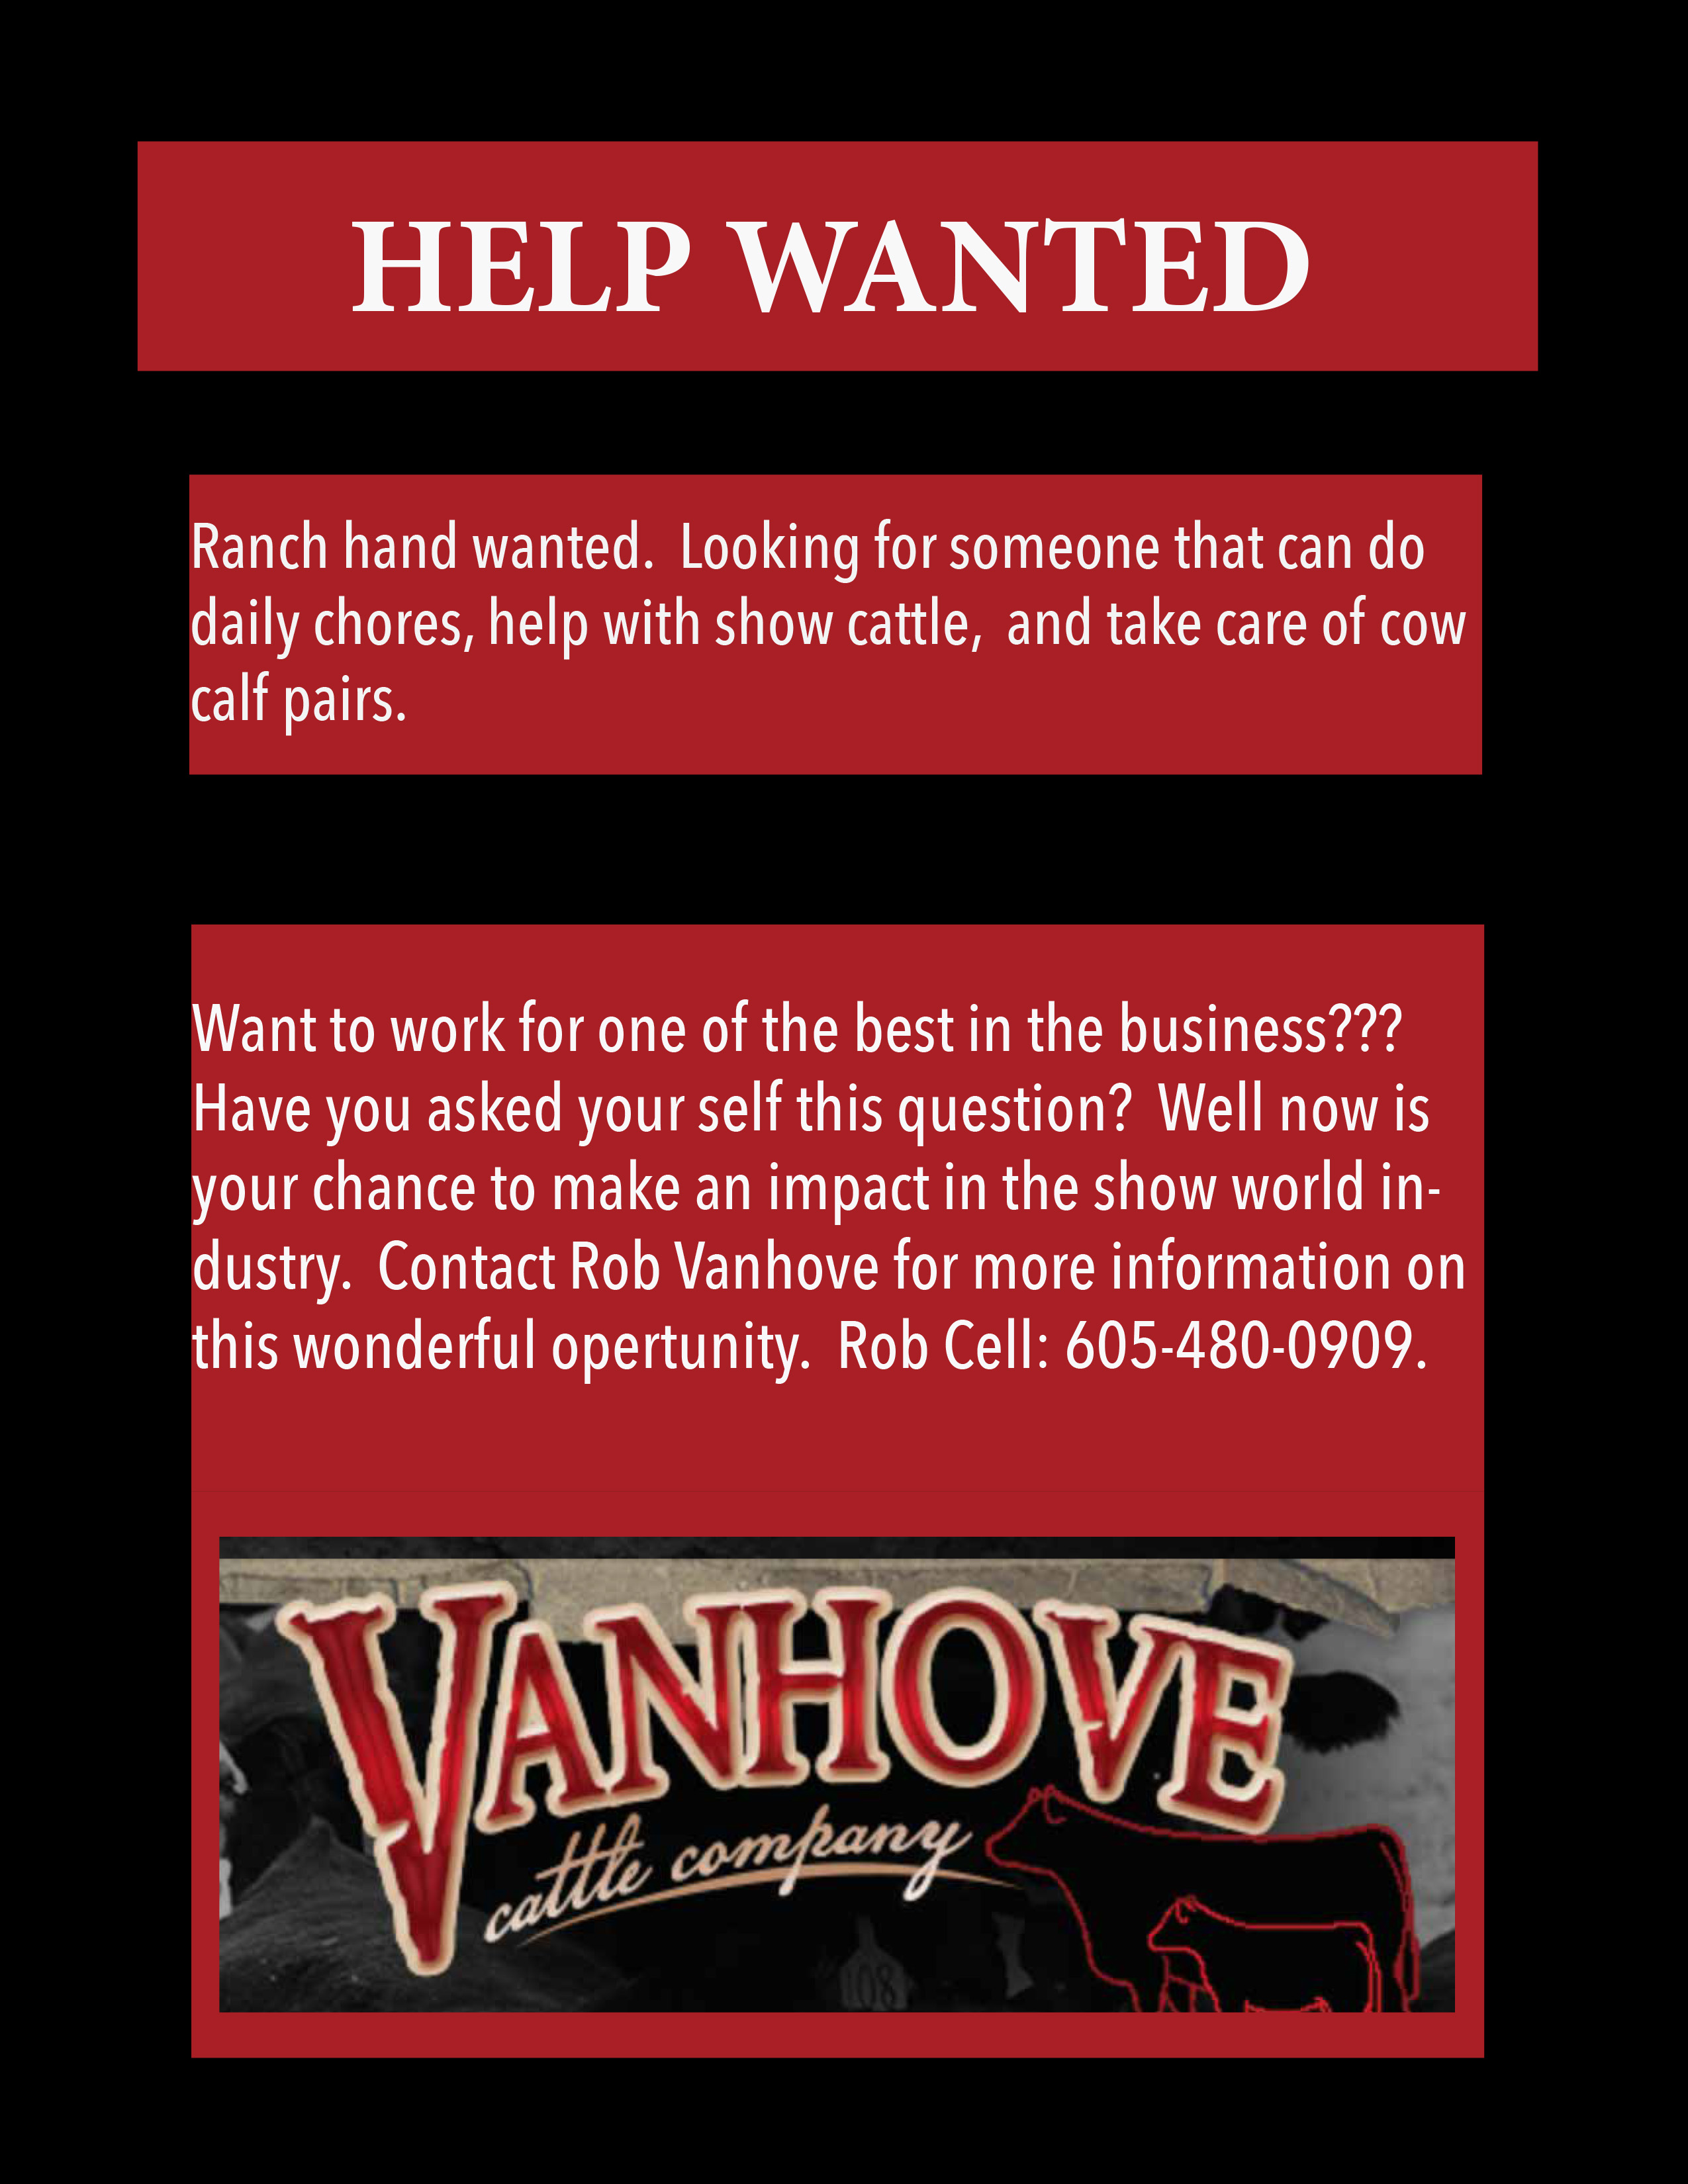 vanhove help wanted sm file sz (1)